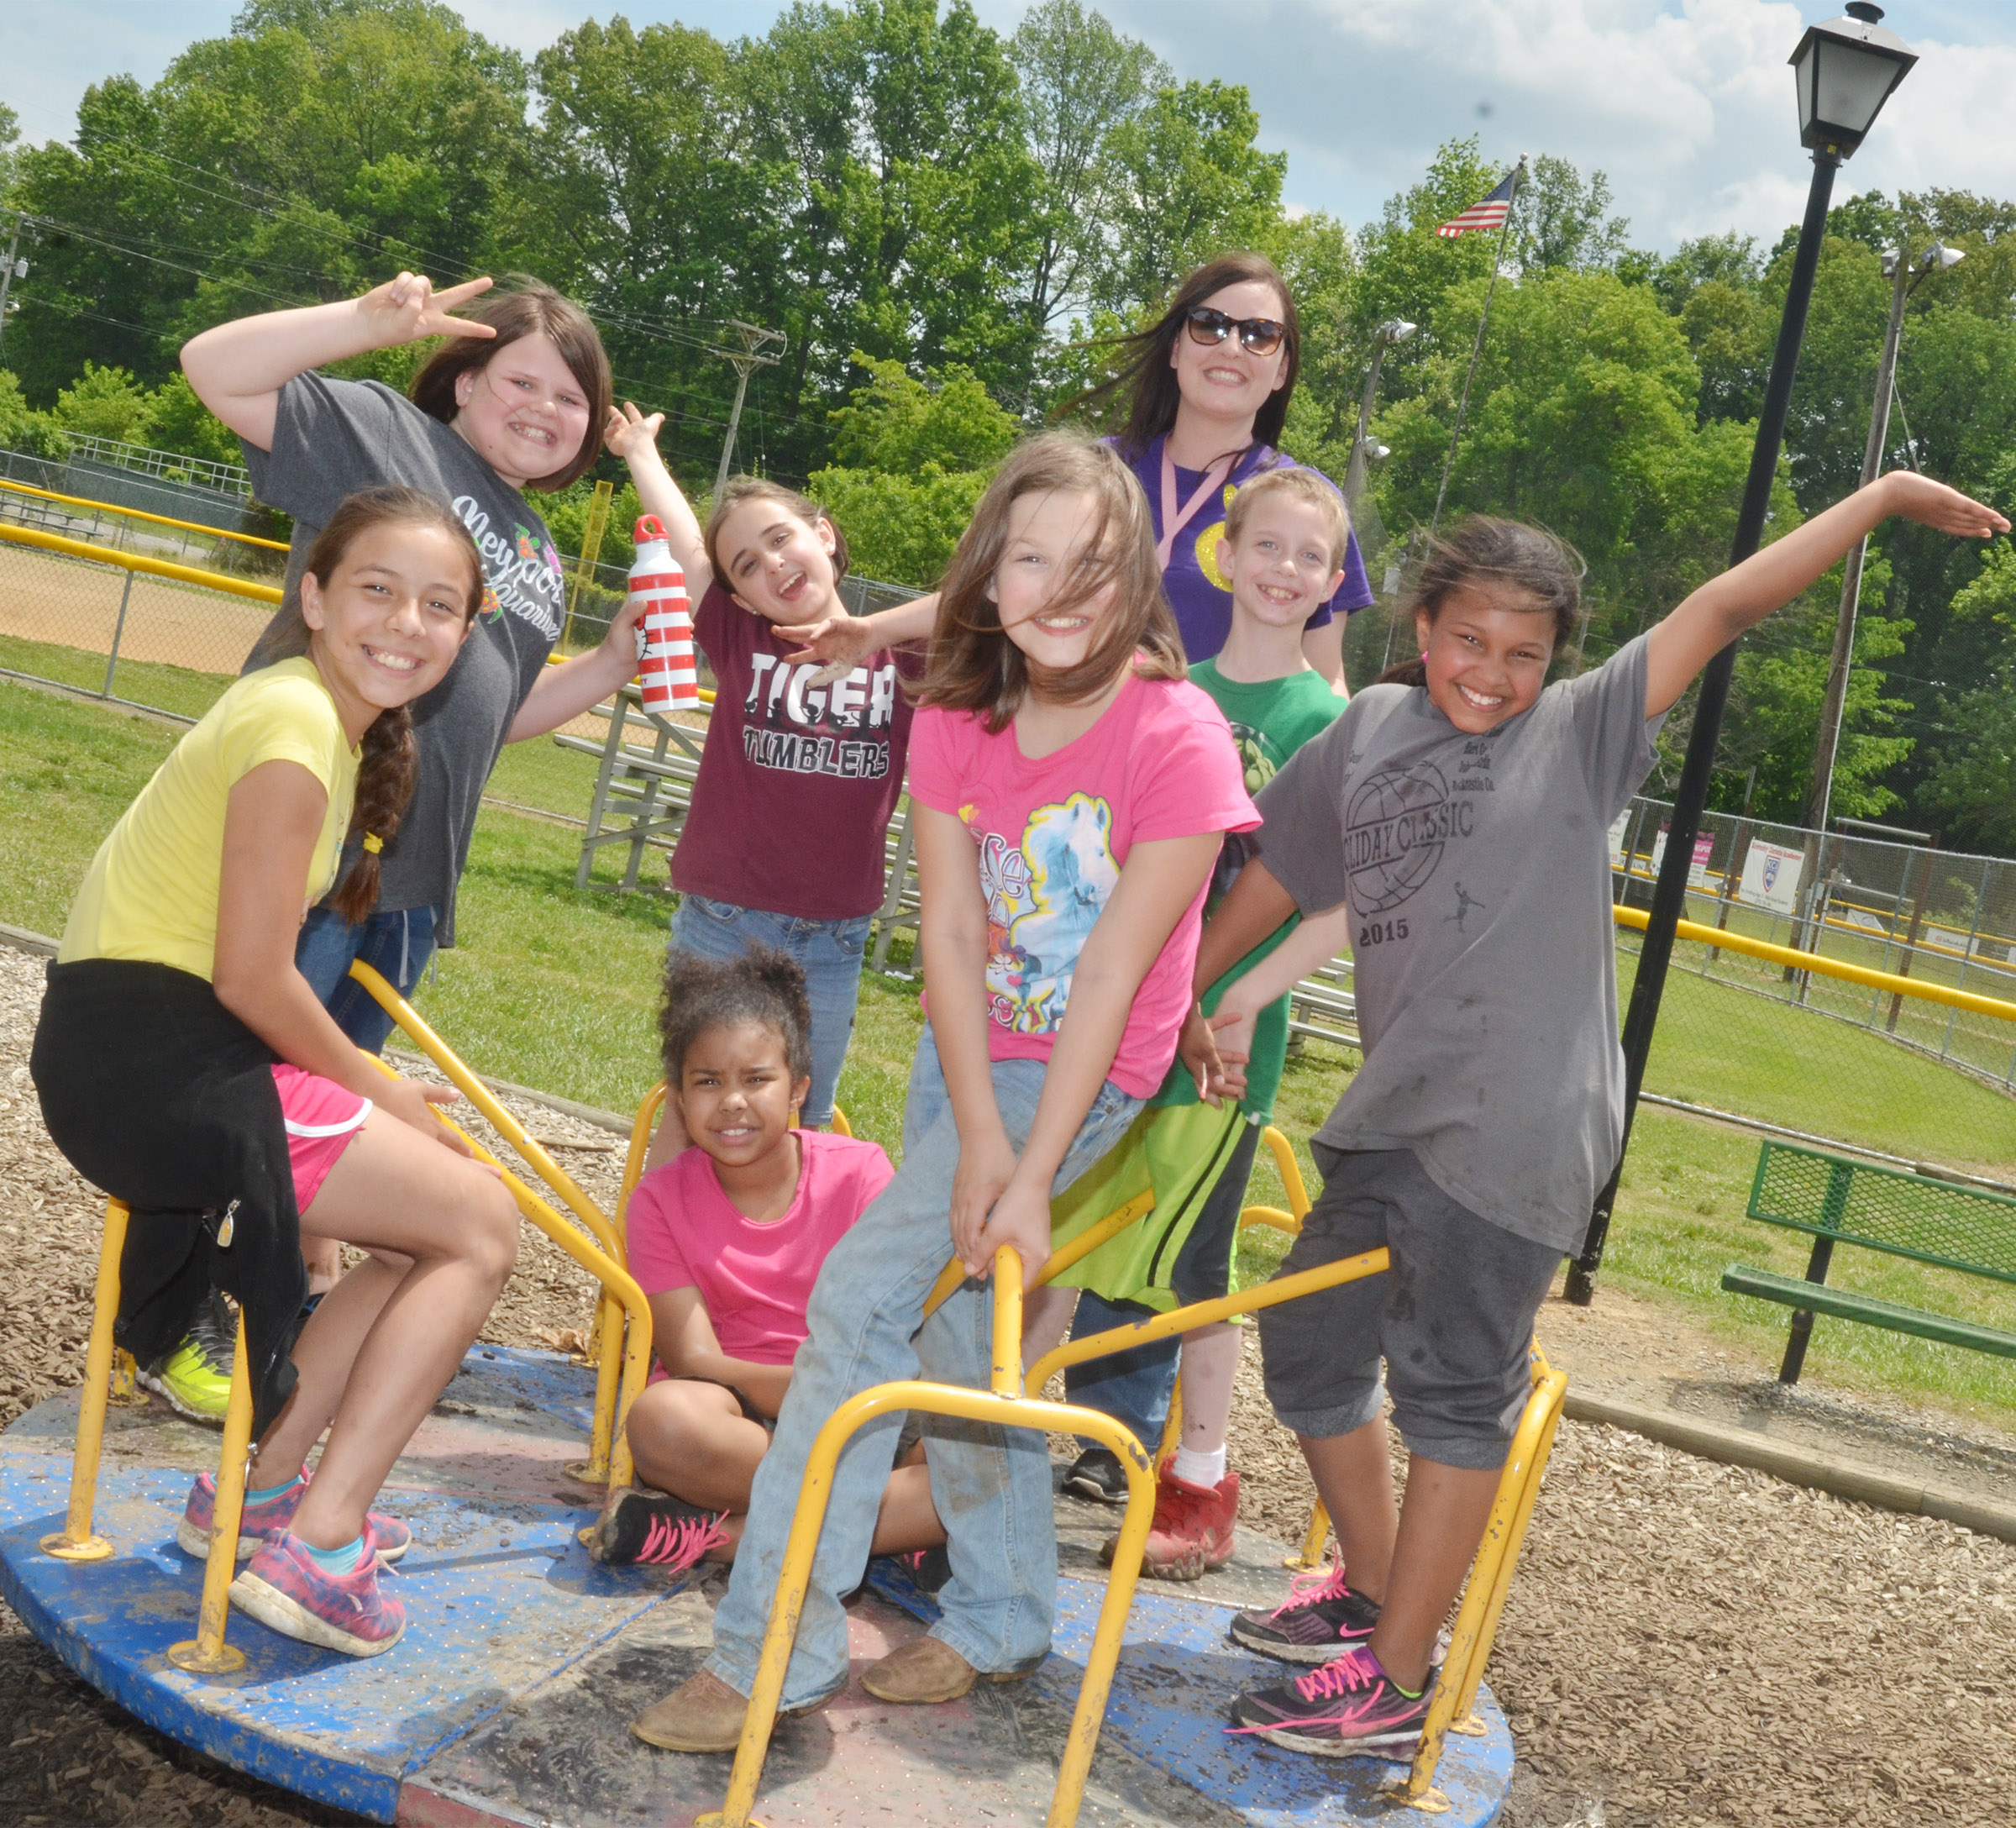 CMS fourth-graders, from left, Marissa Segura, Keeley Dicken, Anna Floyd, Serenity Mings, Destiny Milby, Will Wooley and Jaclyn Jackson smile for a photo on the merry-go-round with their teacher, Samantha Coomer, in back.